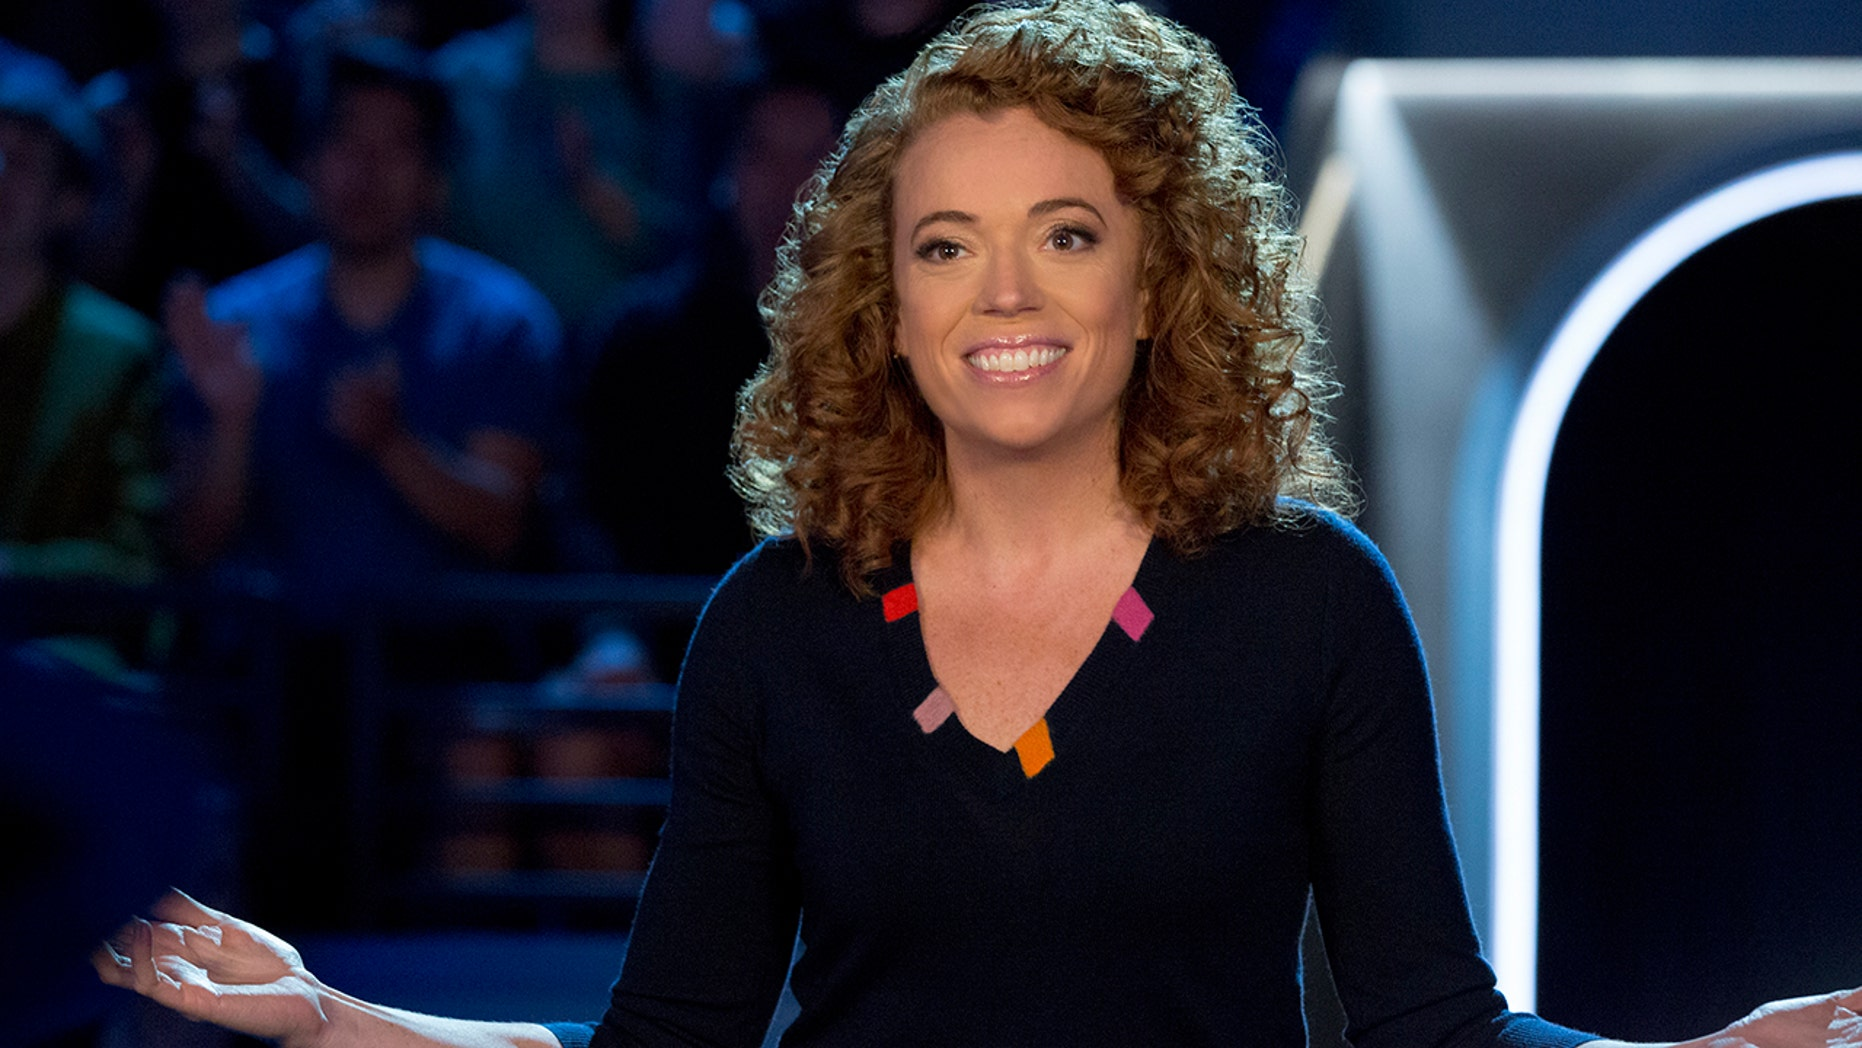 Comedian Michelle Wolf's Netflix show has reportedly been cancelled just months after it debuted.